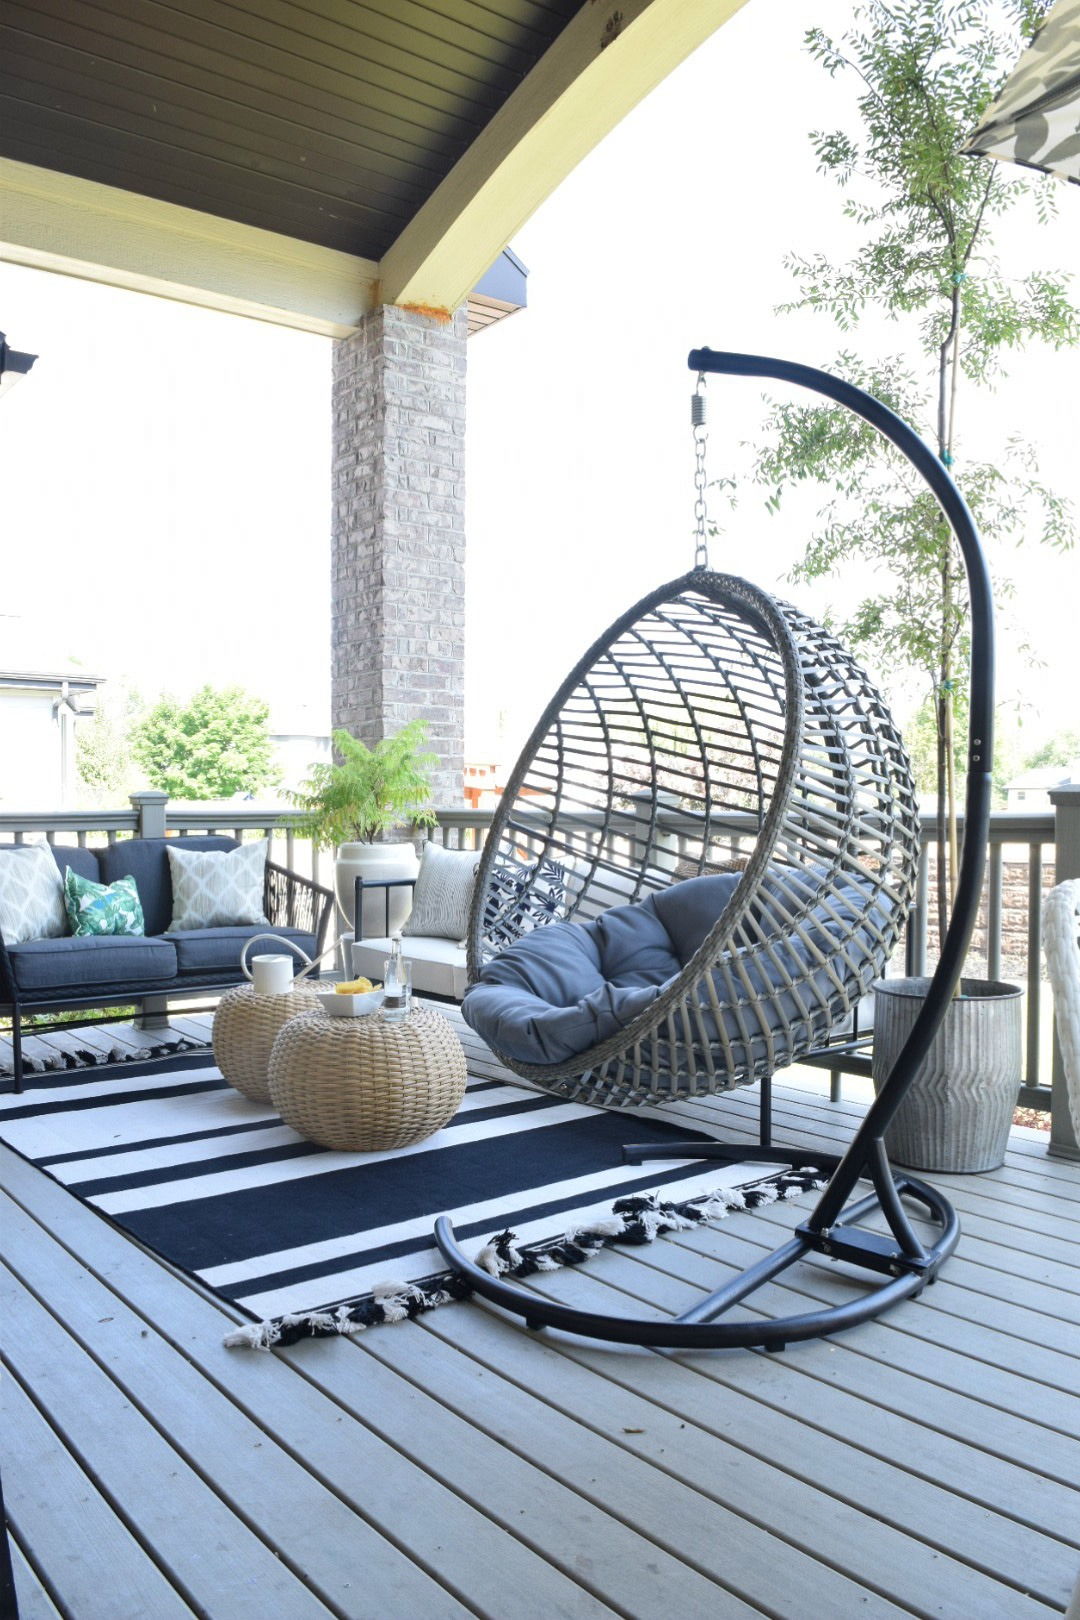 Outdoor patio and living space with hanging chair for Outdoor patio space ideas